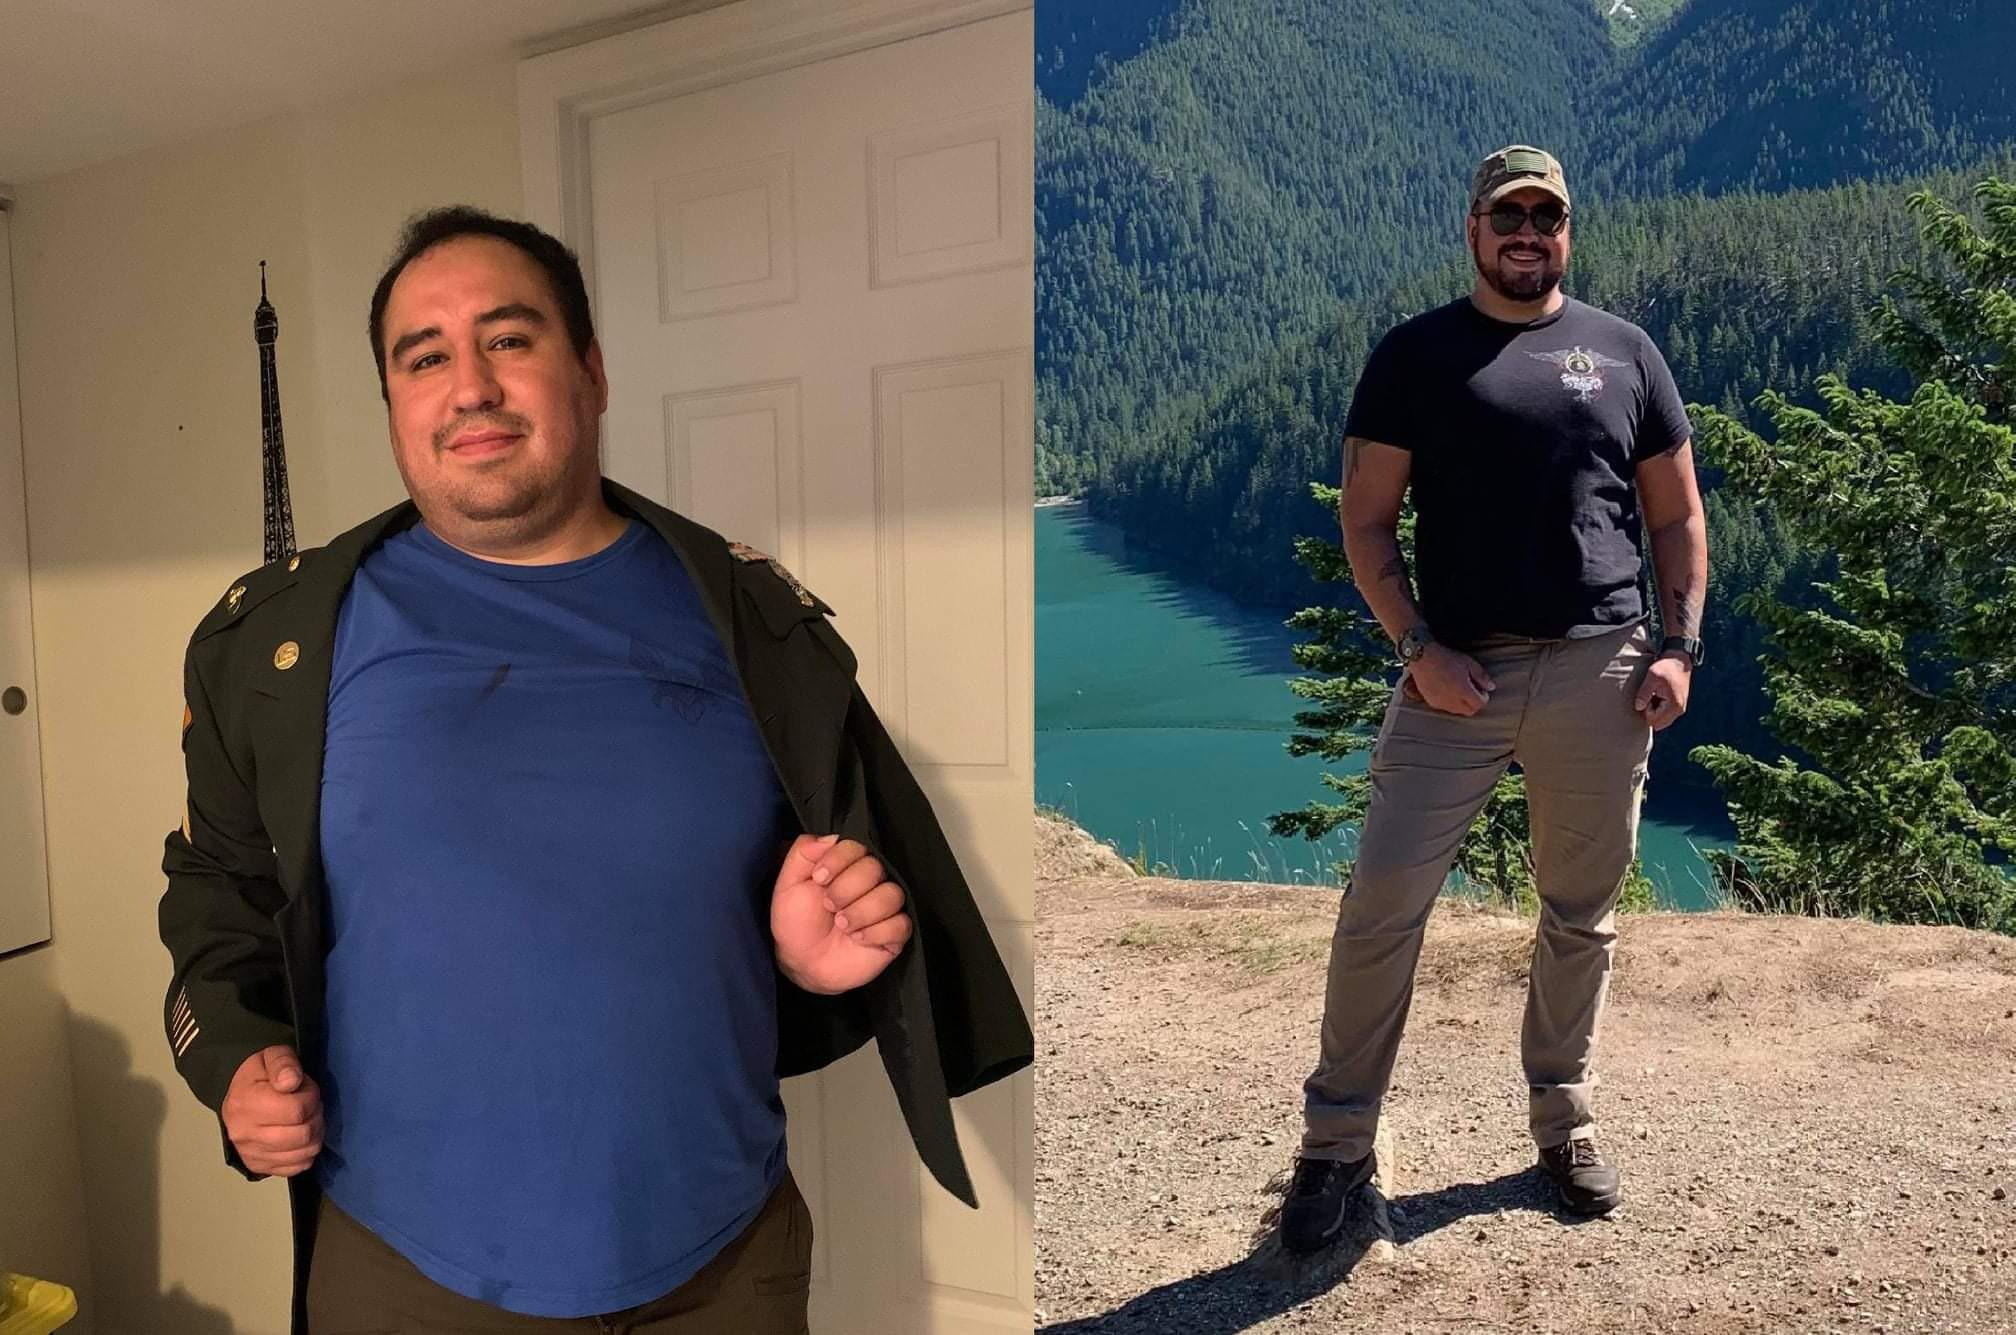 5 foot 11 Male Before and After 38 lbs Fat Loss 290 lbs to 252 lbs